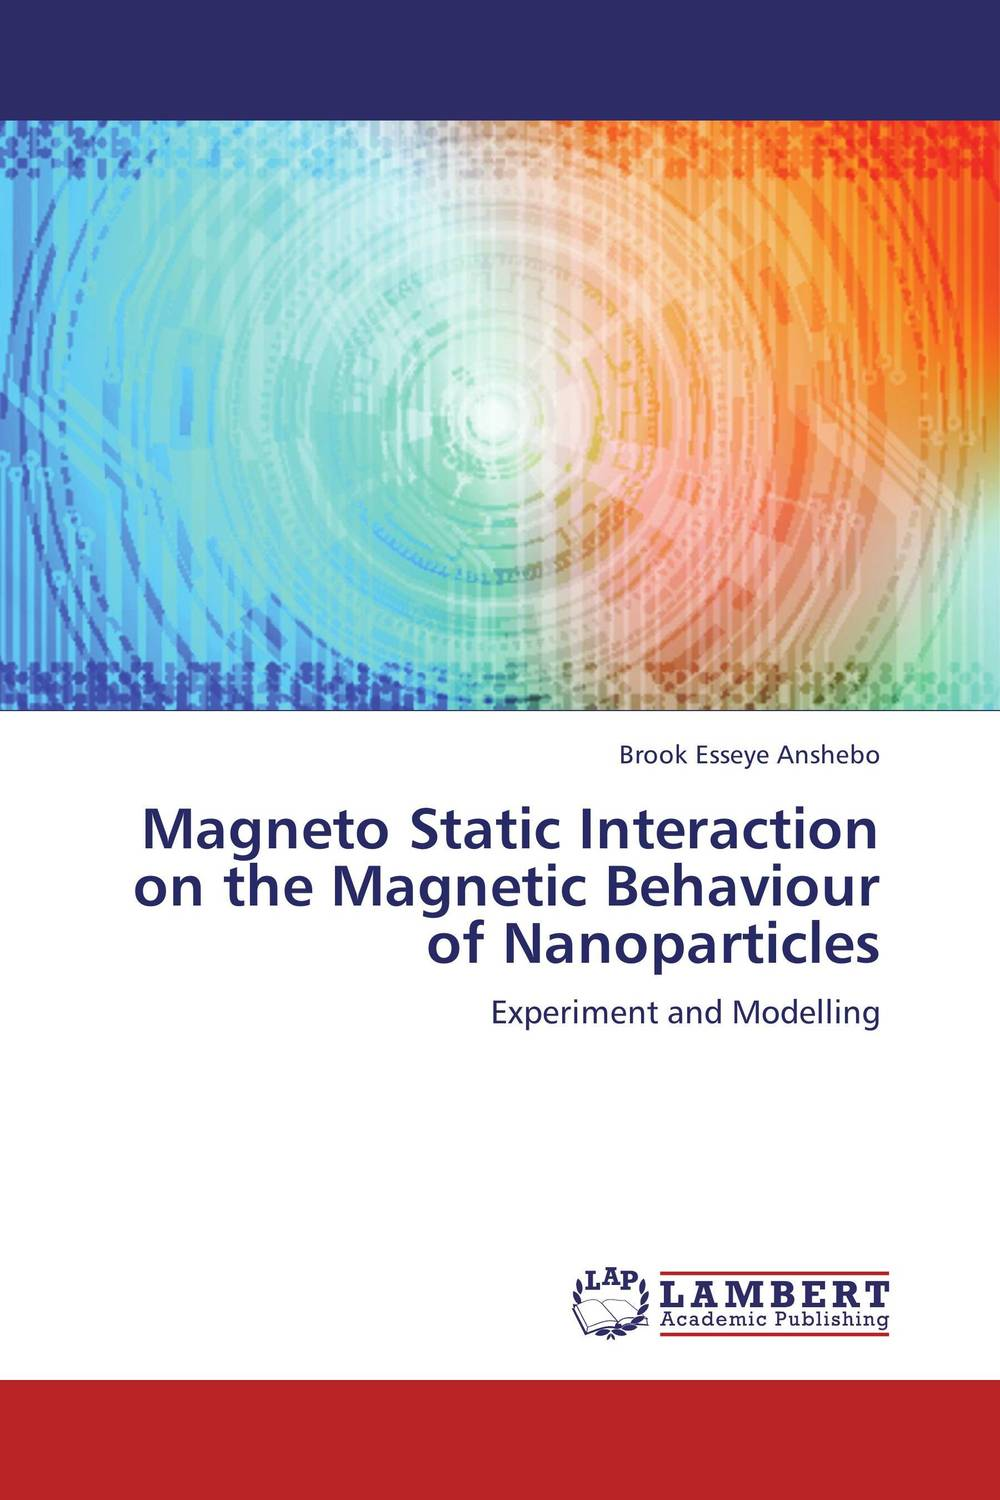 все цены на  Magneto Static Interaction on the Magnetic Behaviour of Nanoparticles  в интернете